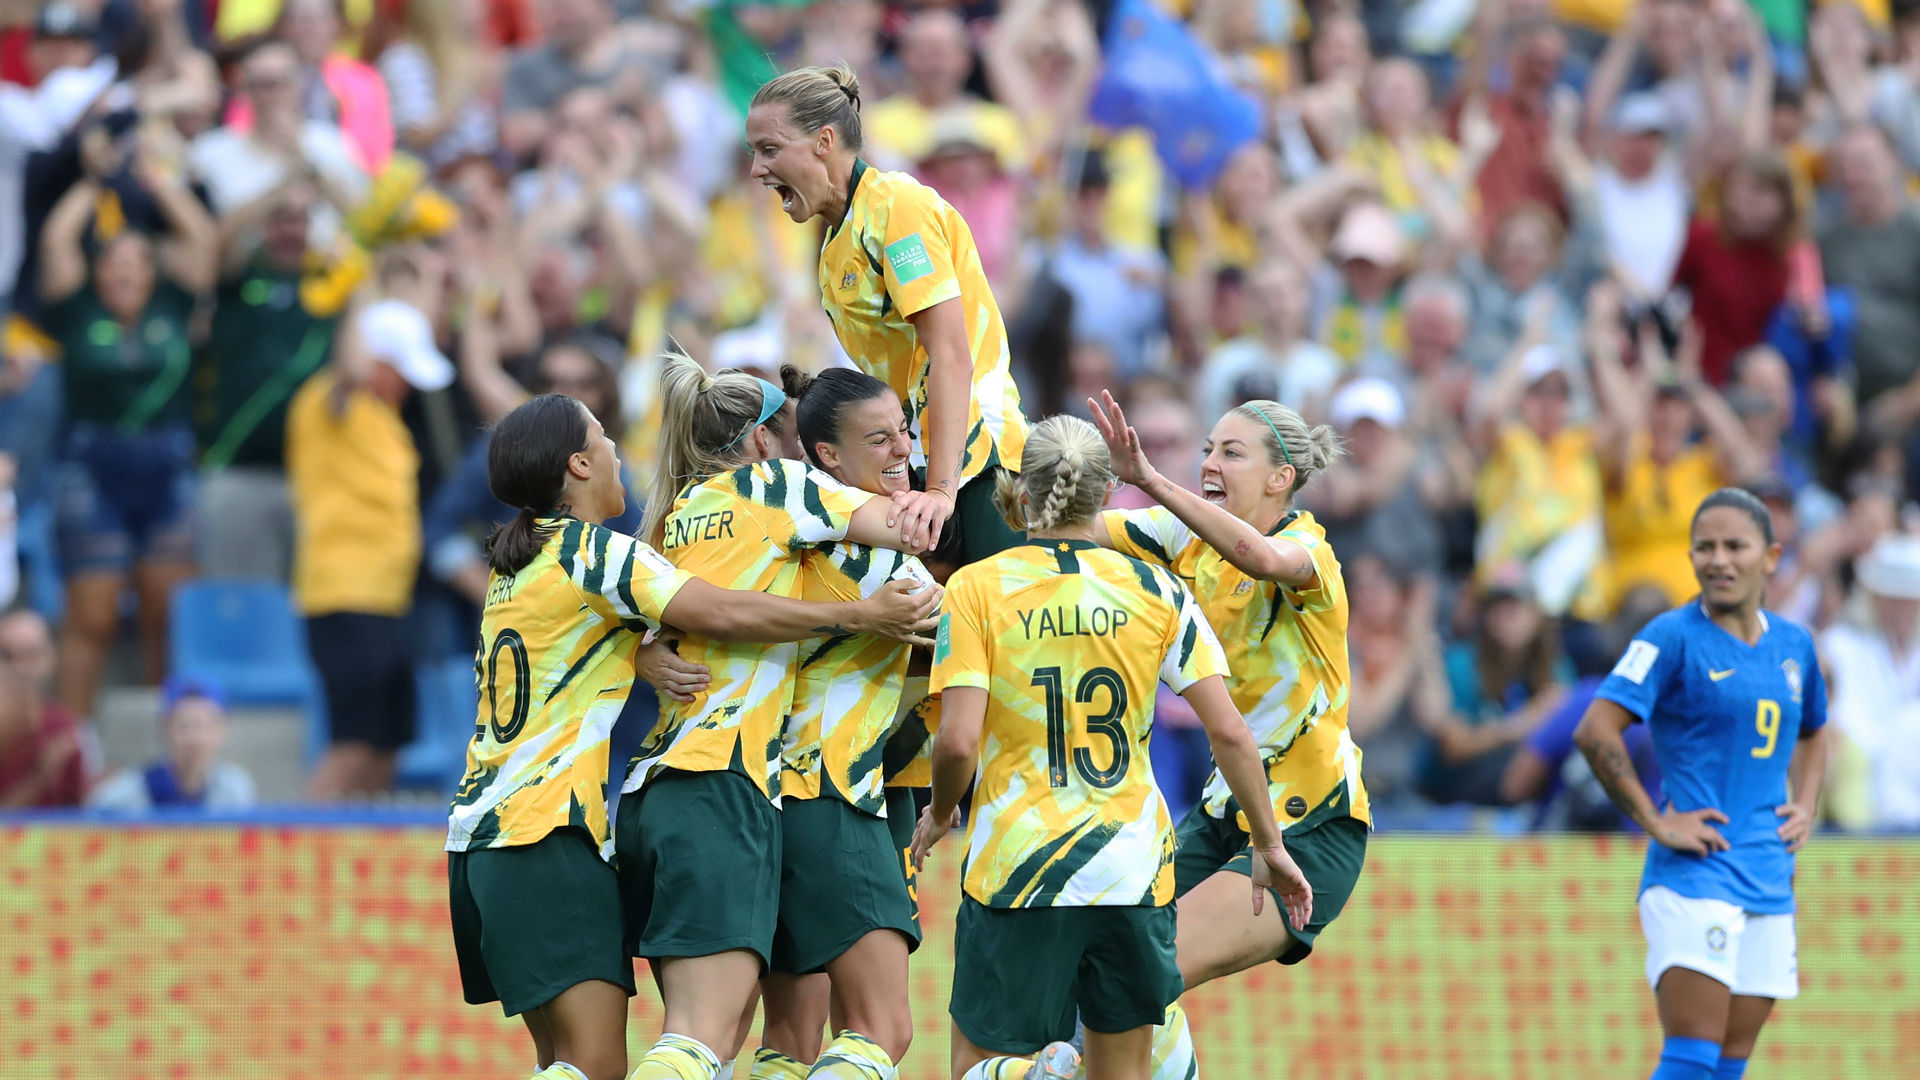 Women's World Cup 2019: Australia roars back from 2-0 deficit to stun Brazil